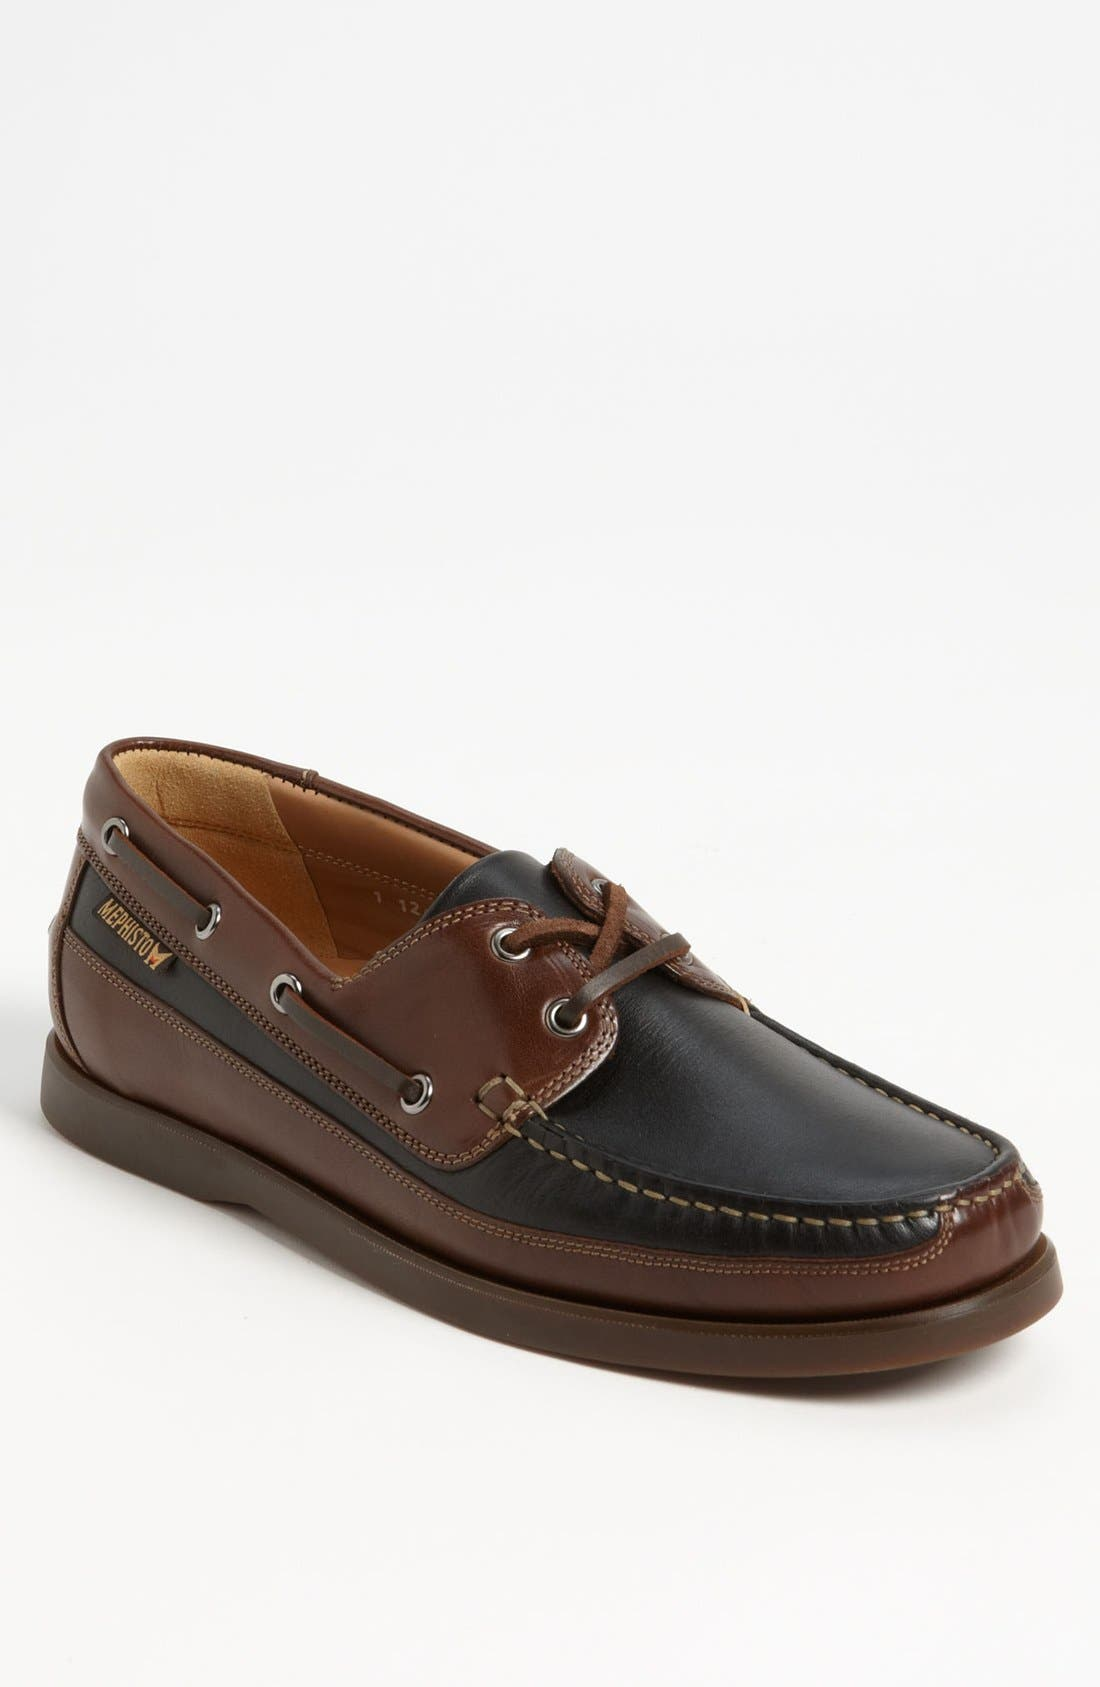 Main Image - Mephisto 'Boating' Water Resistant Leather Boat Shoe (Men)